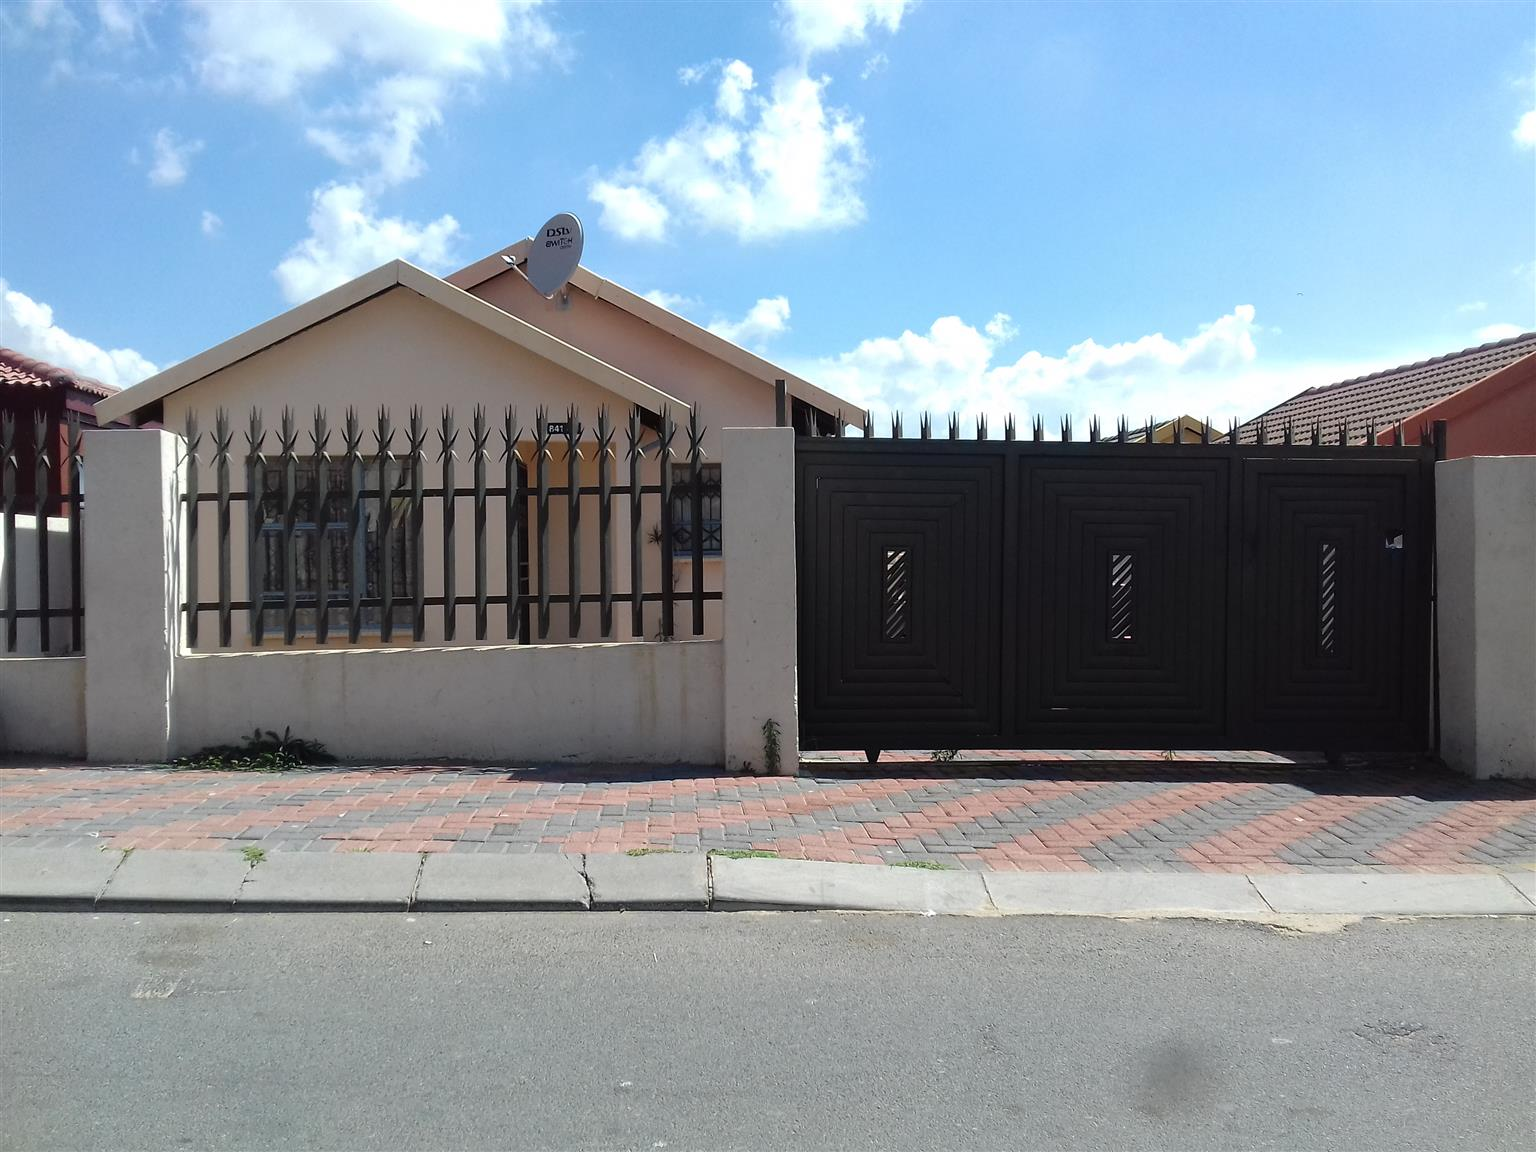 3 bedroomed house to let in fleurhof